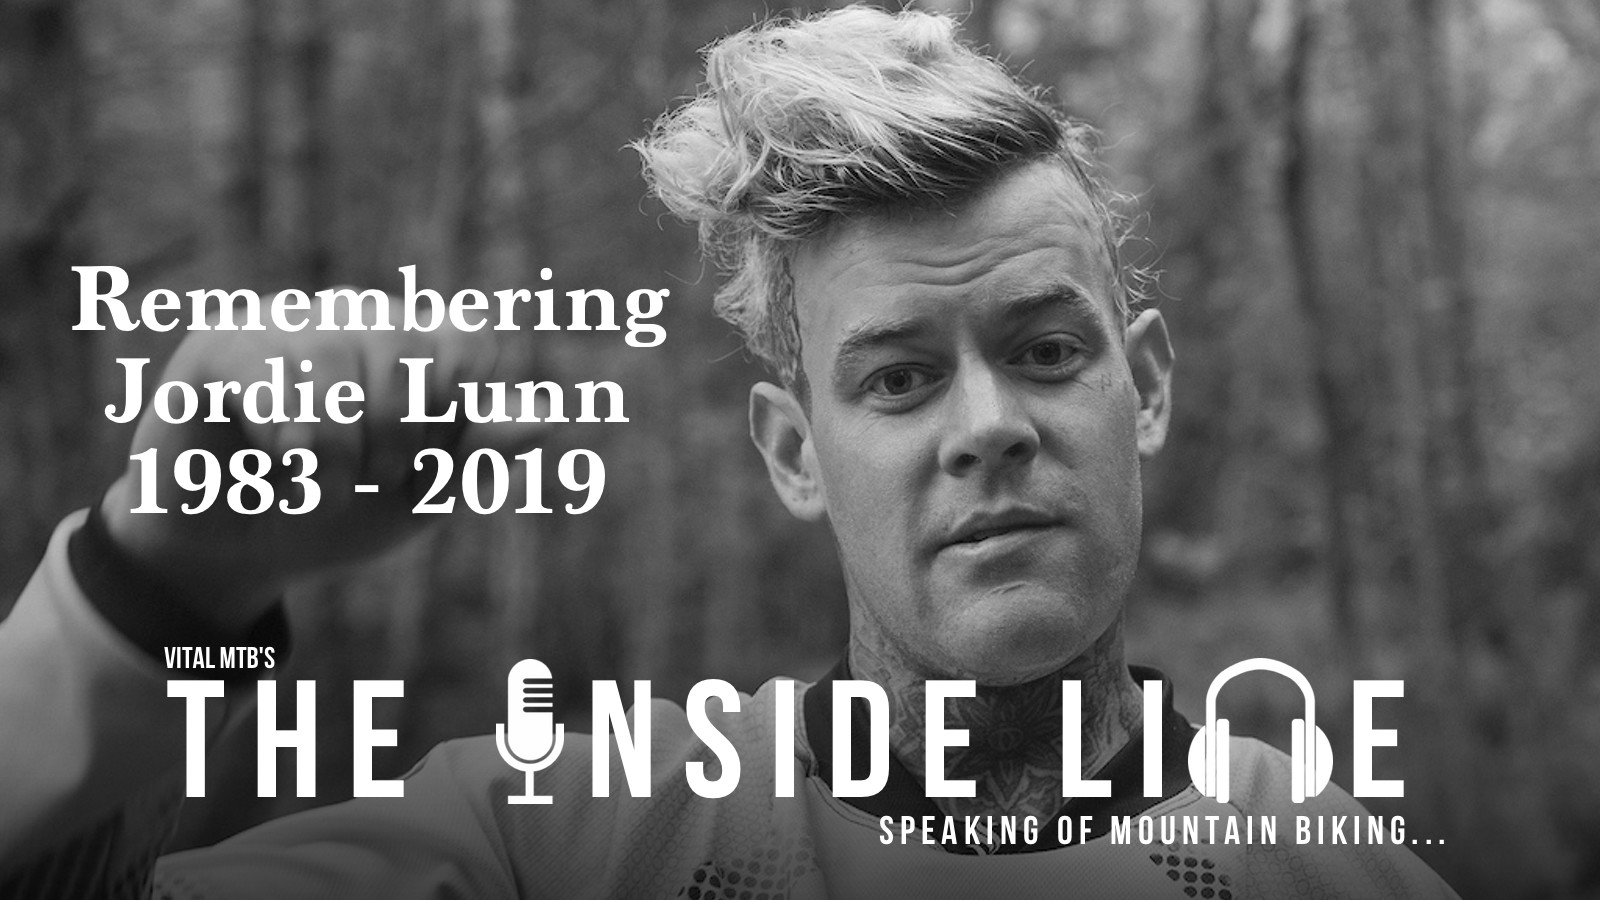 Remembering Jordie Lunn - The Inside Line Podcast